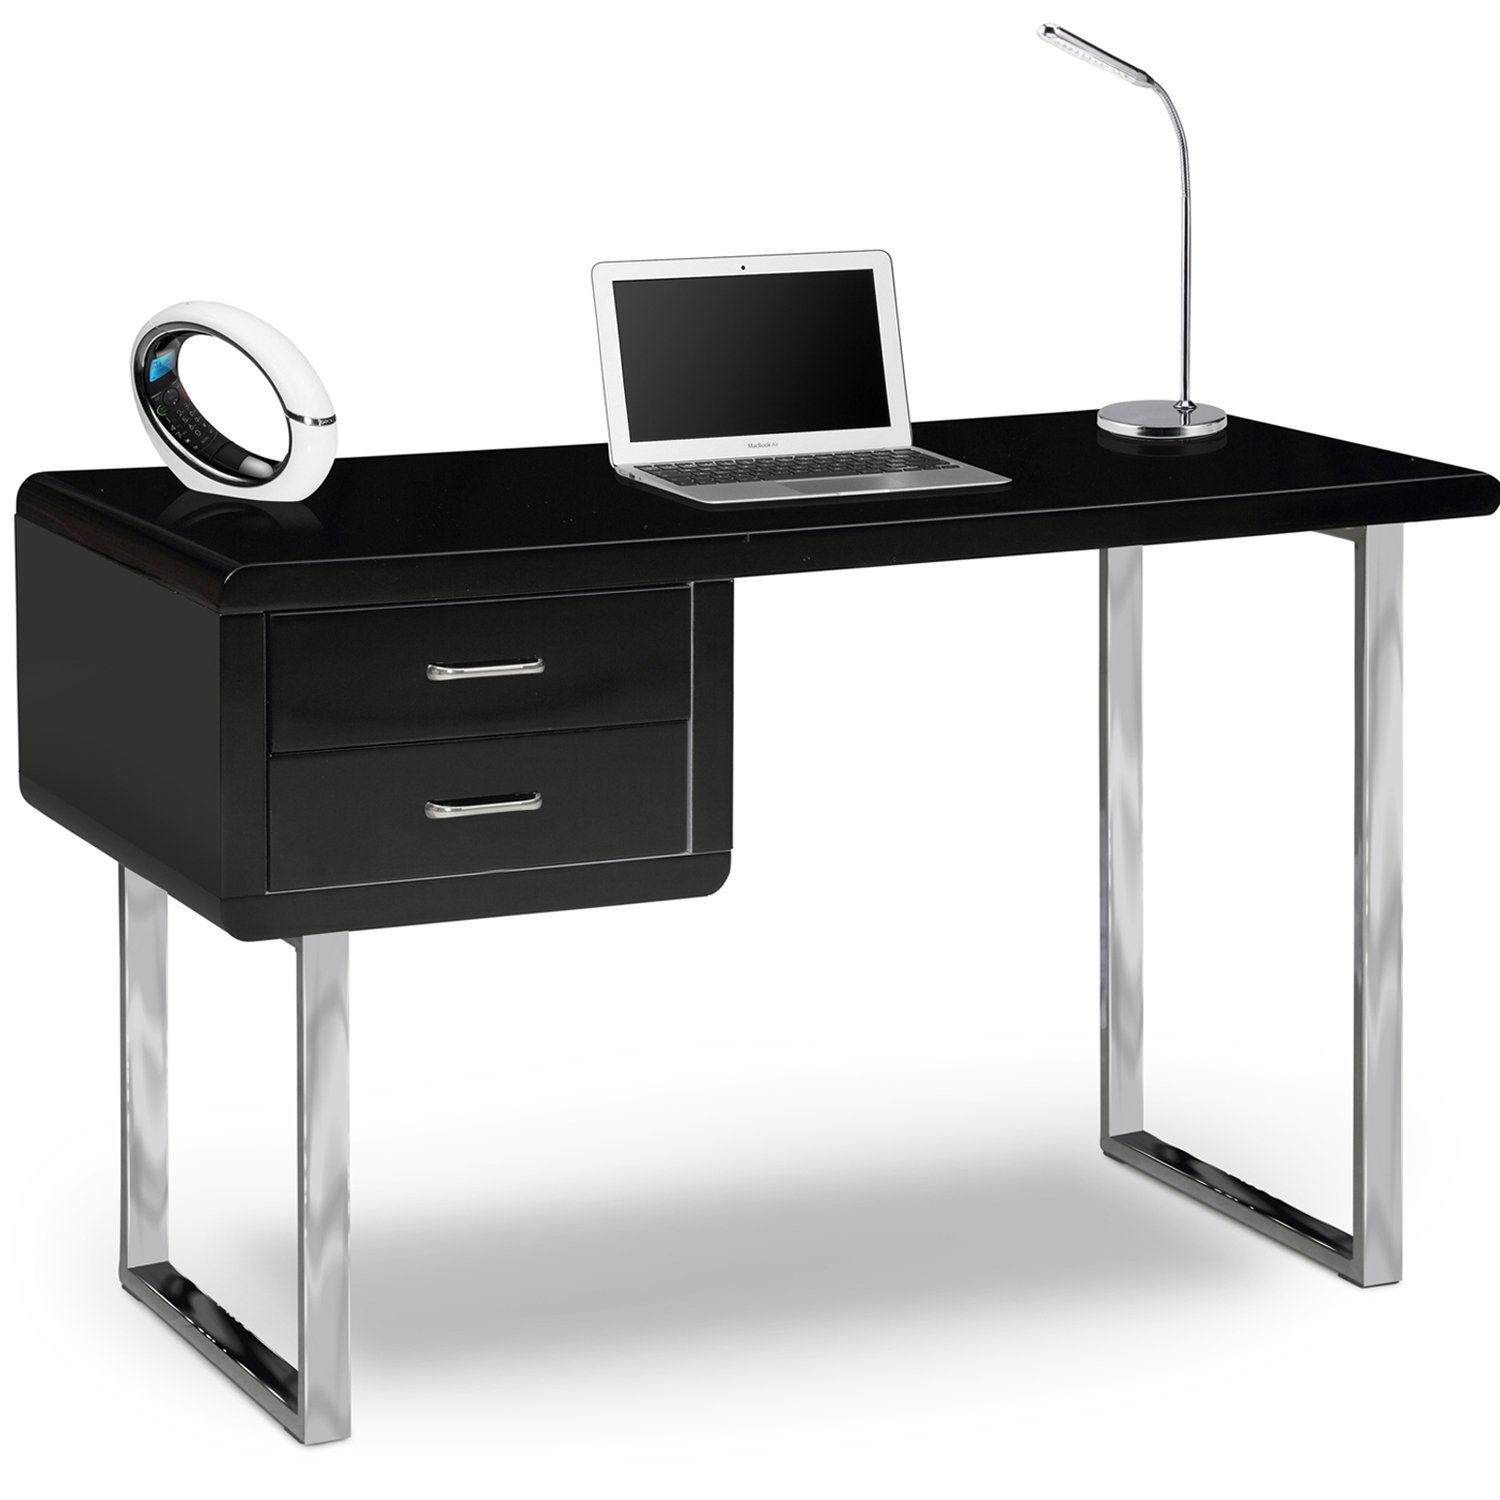 centurion supports harmonia gloss black with chrome legs drawer  - centurion supports harmonia gloss black with chrome legs drawercontemporary home office luxury computer desk amazoncouk kitchen  home